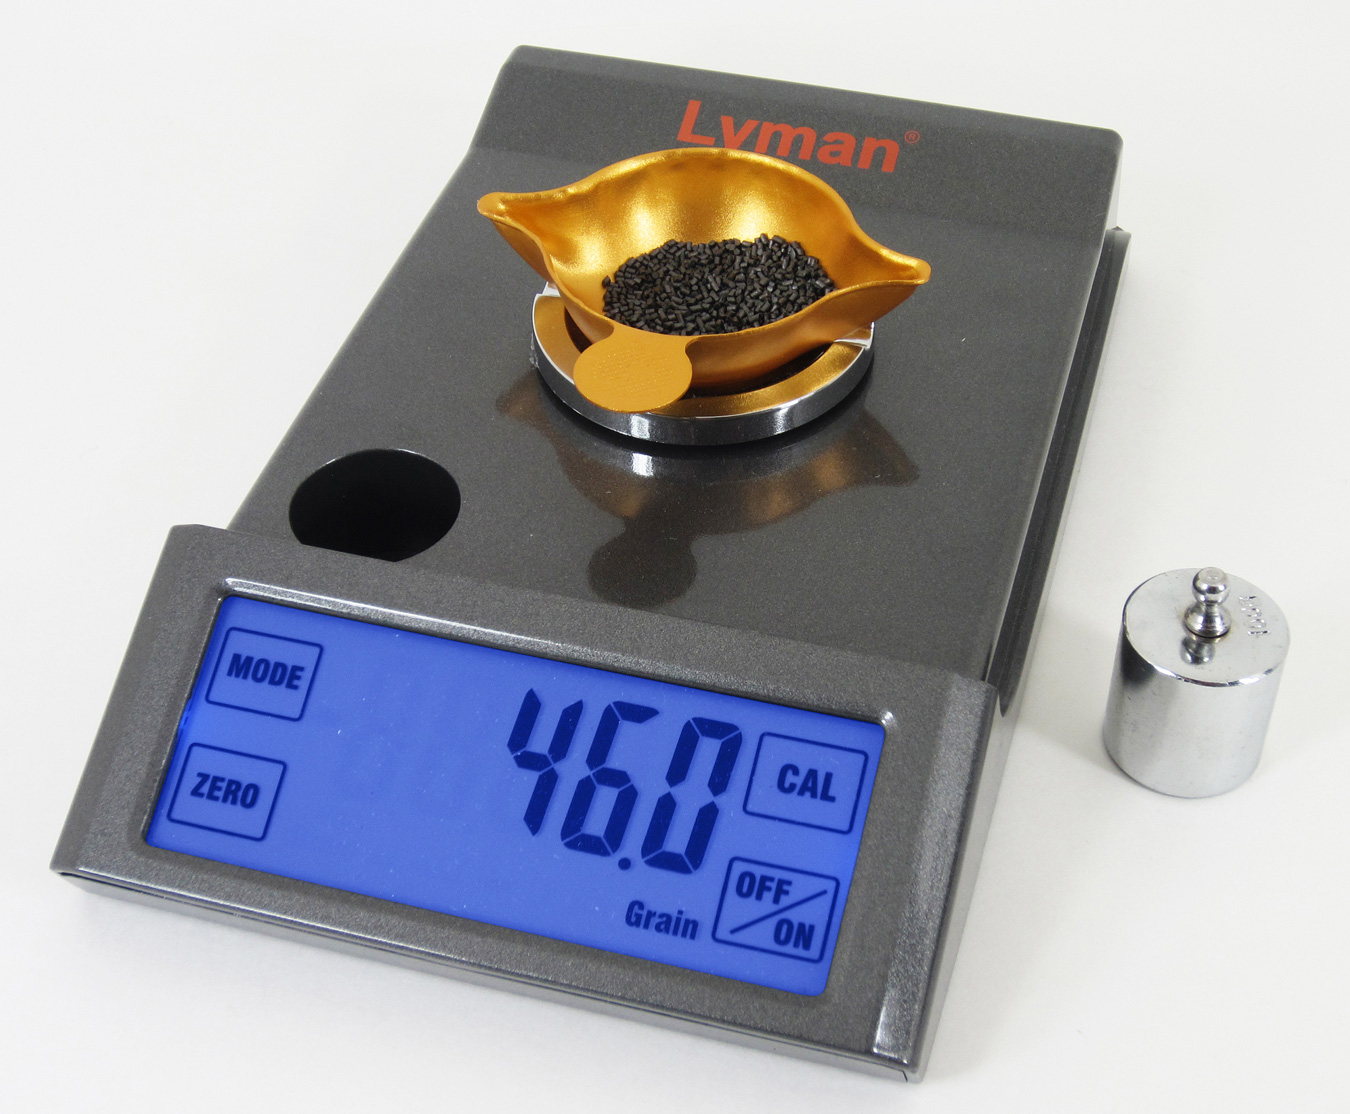 Lyman digital powder scale